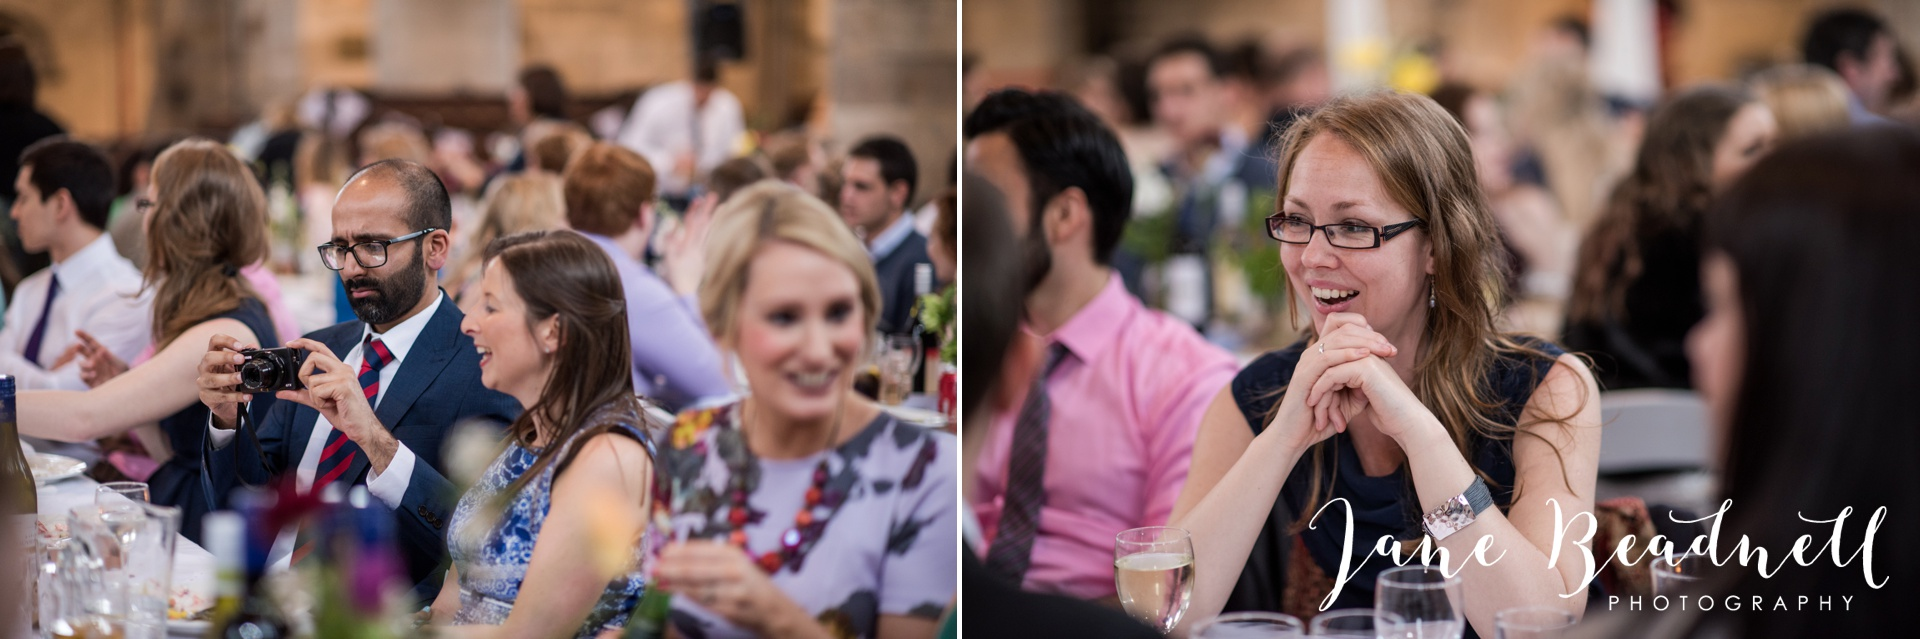 Left Bank Centre Leeds wedding photography by Jane Beadnell photography Yorkshire_0096